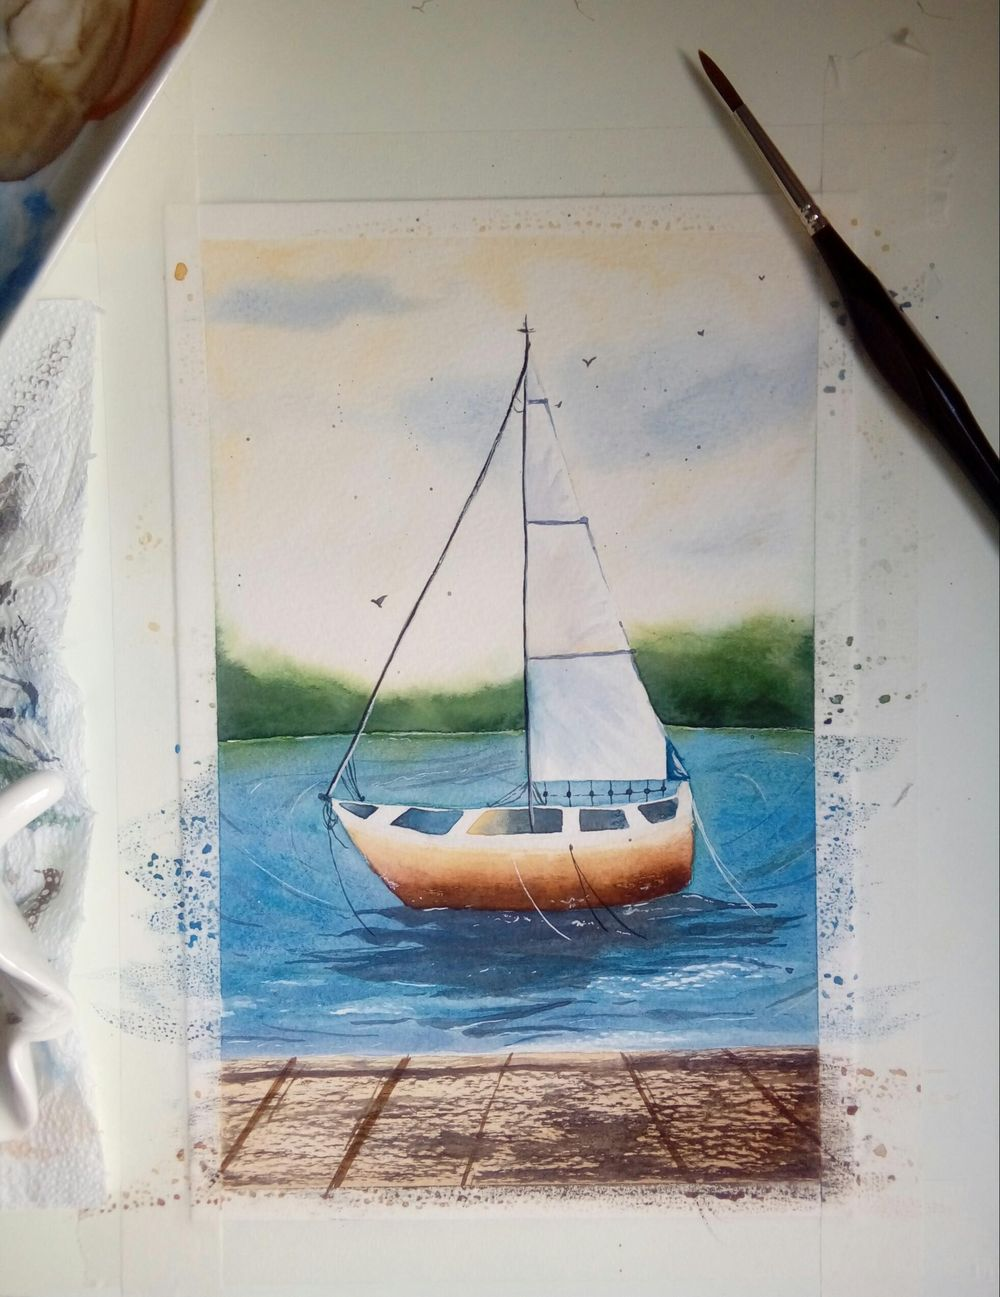 Watercolor Seascape - image 4 - student project